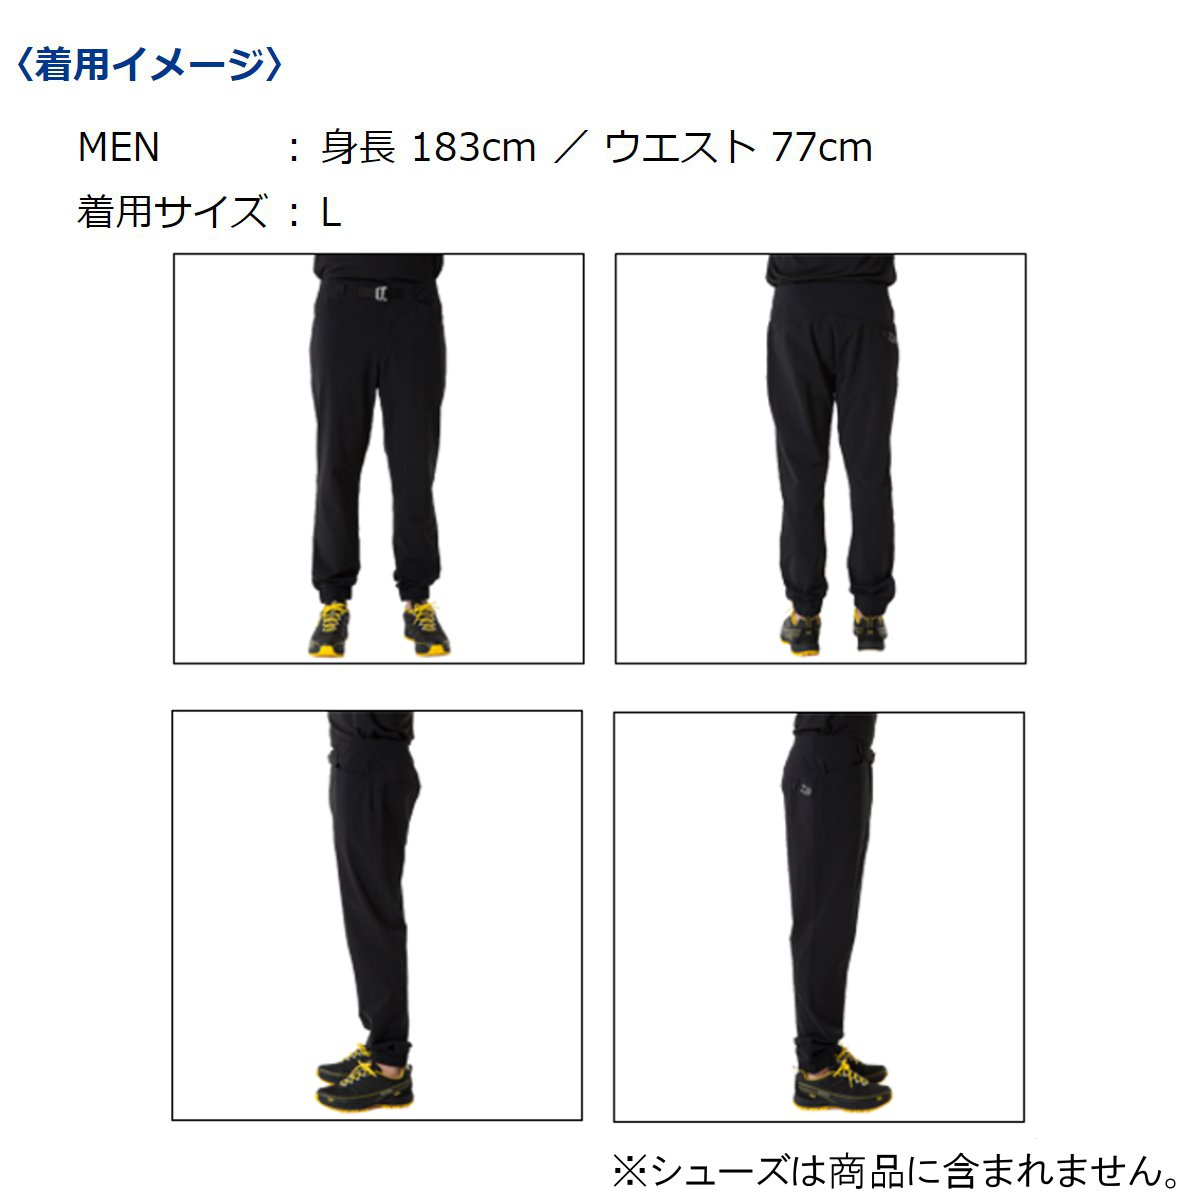 Daiwa (Daiwa) strong water repellency stretch pants DP-8007 L black